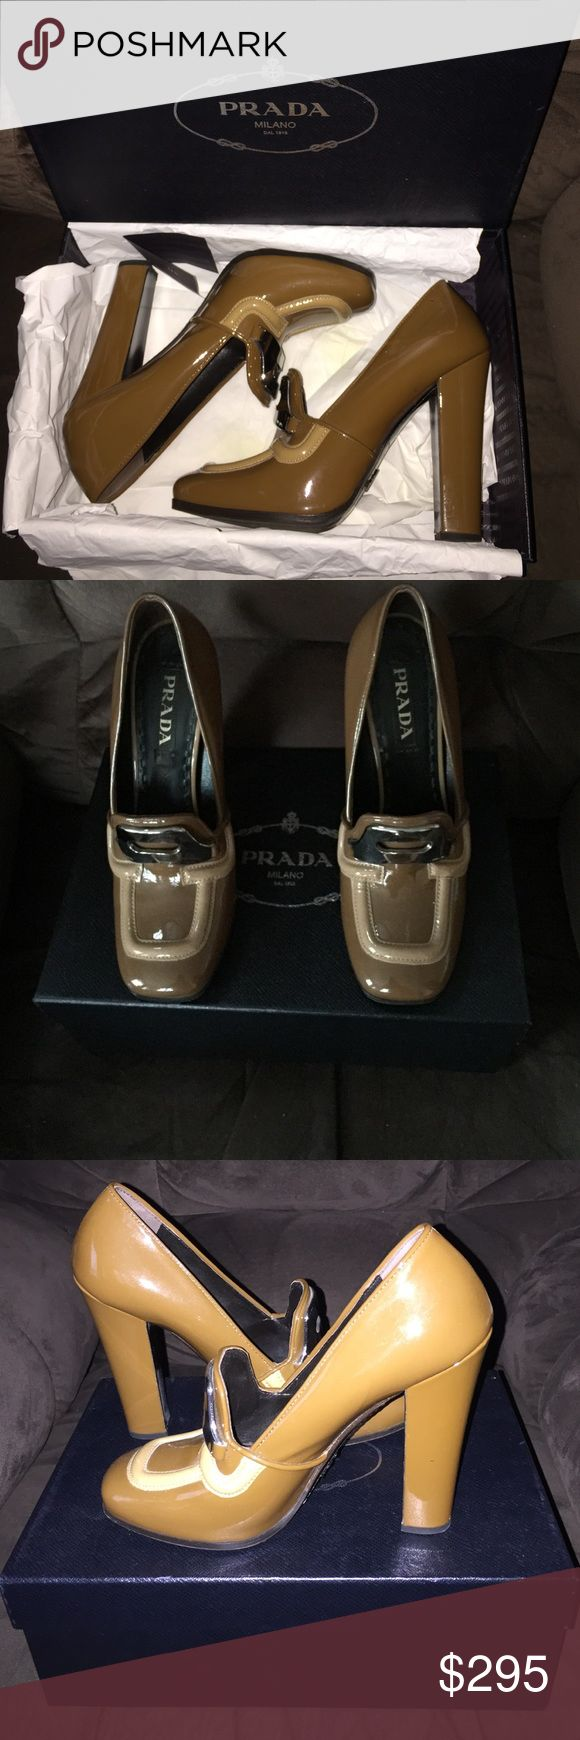 "Prada runway Pump Patent leather camel pump with distinctive details like hardware and piping. High fashion, was on waiting list for this""Dream"" pump. Plus the color go with everything. Enjoy. Like new Prada Shoes Heels"